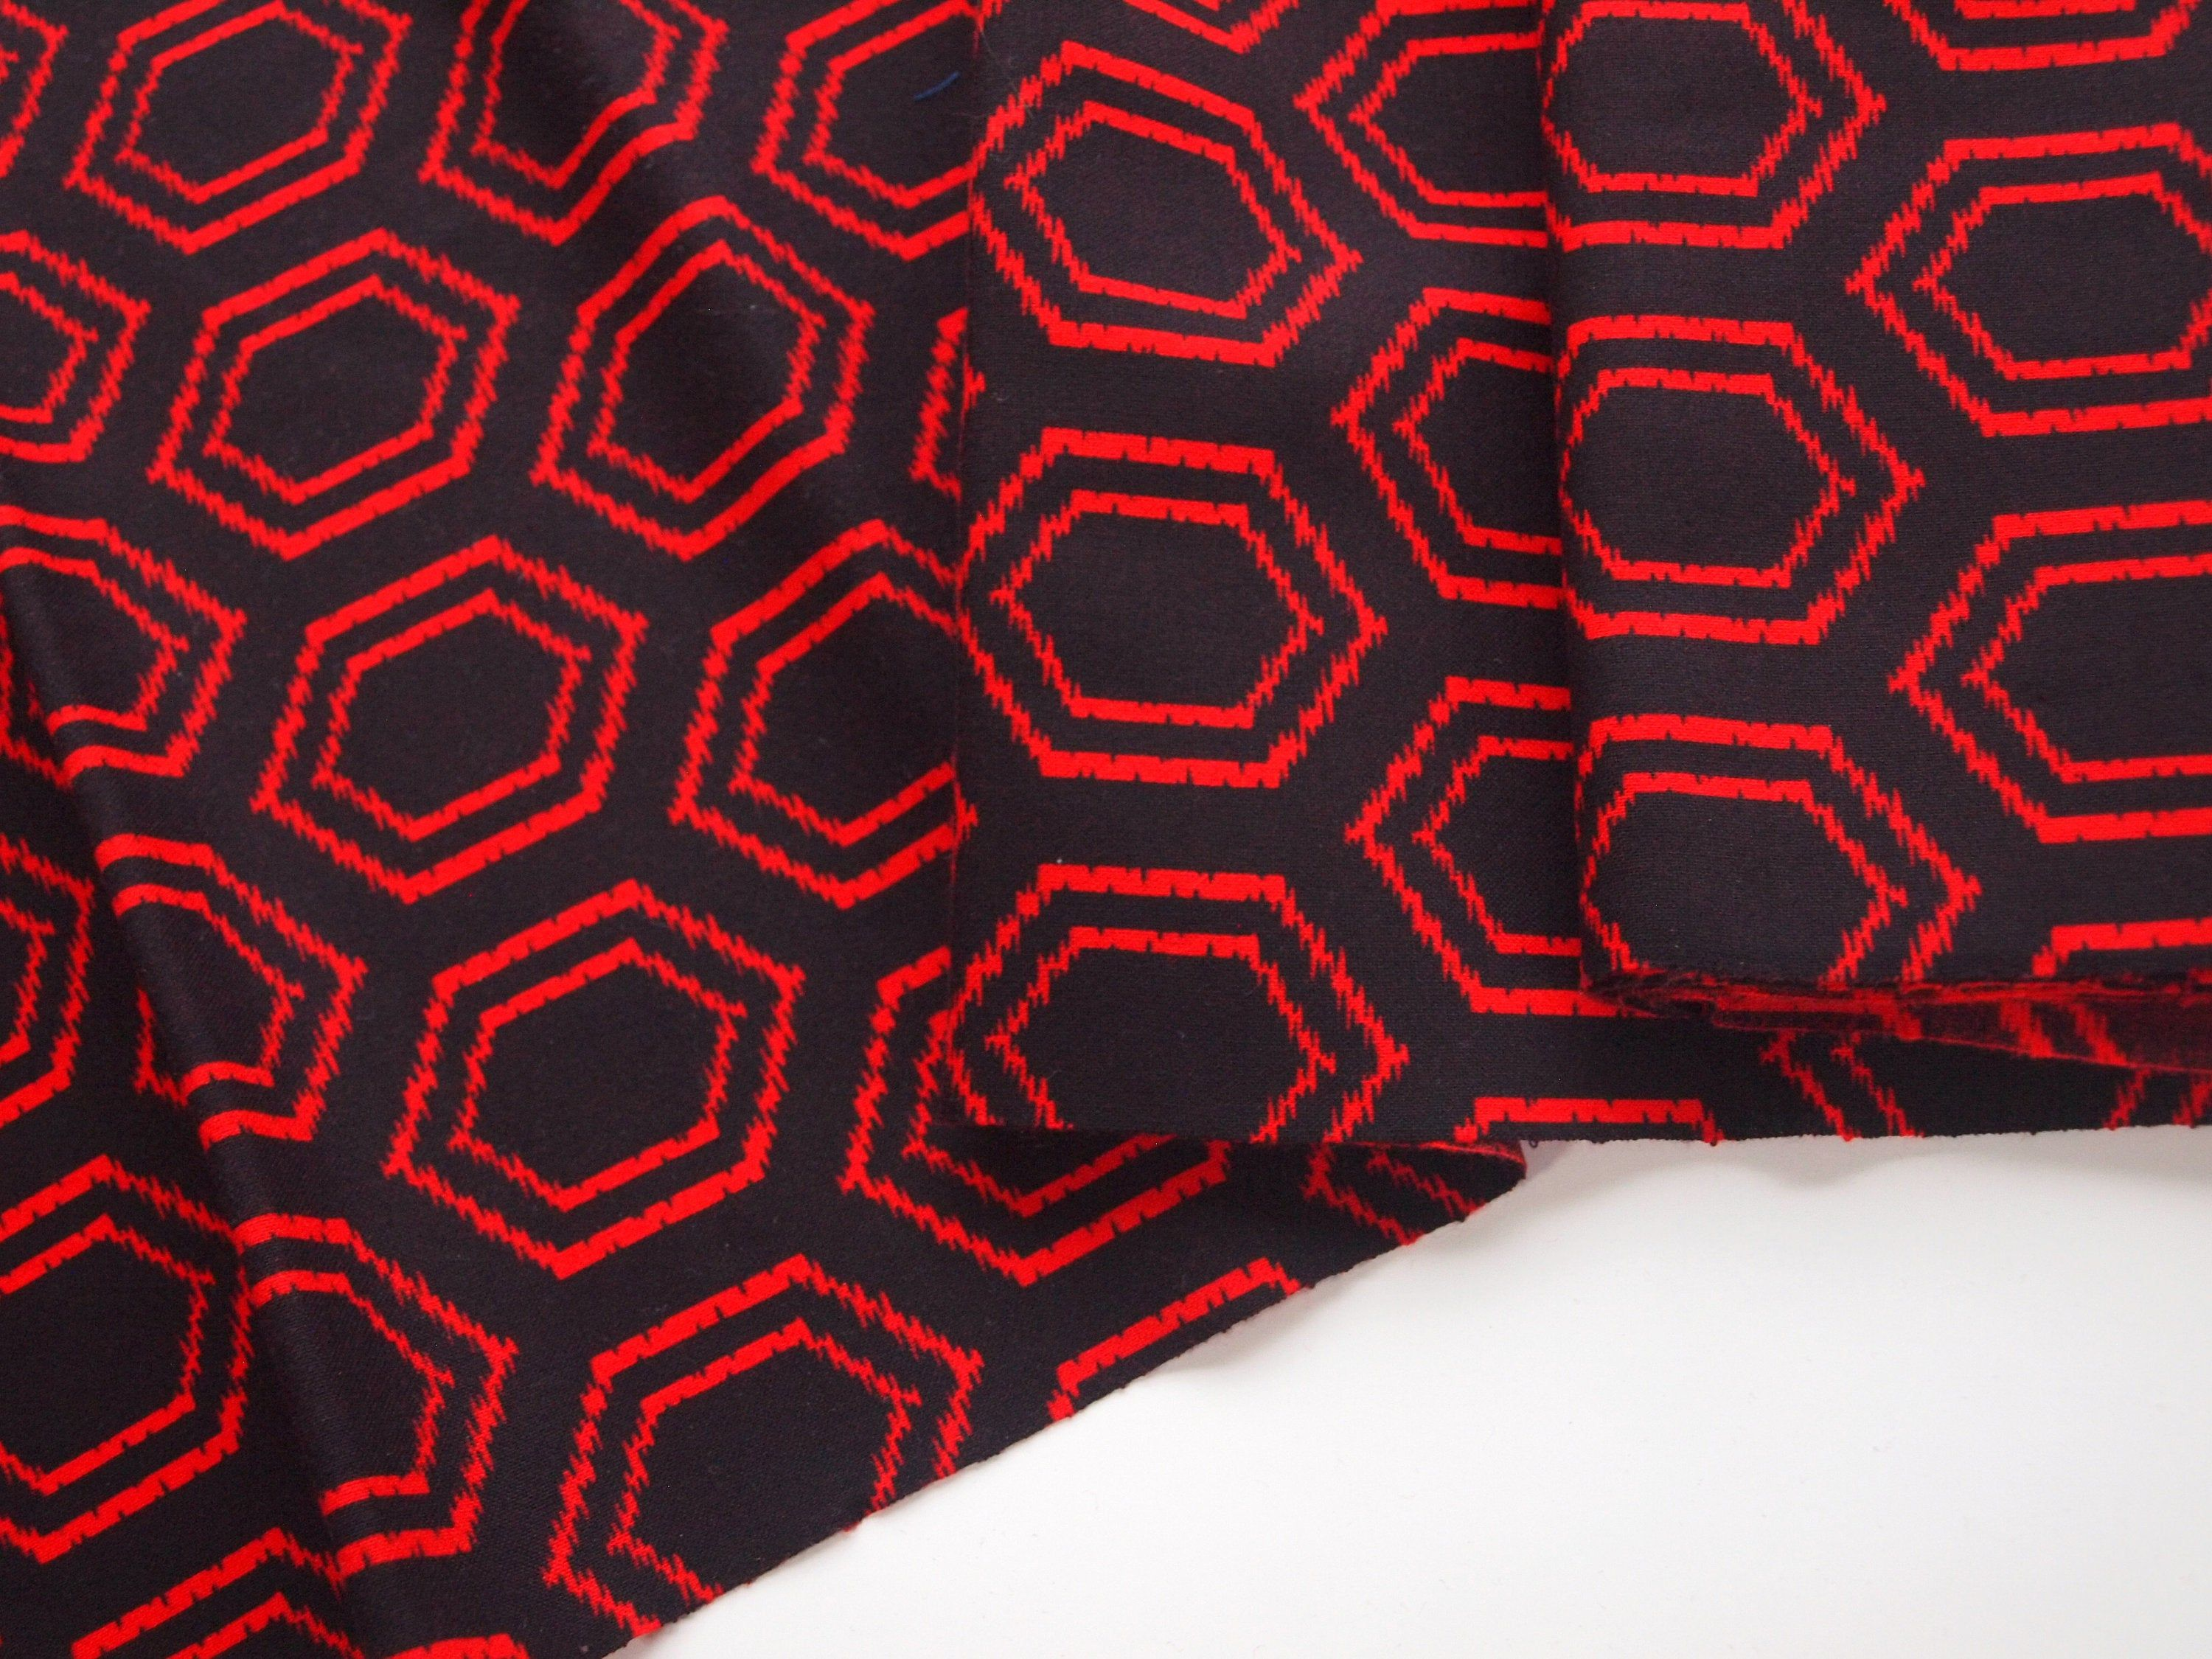 Synthetic Blend Kimono Fabric With A Turtle Shell Pattern Unused Bolt By The Yard In 2020 Shell Pattern Kimono Fabric Fabric